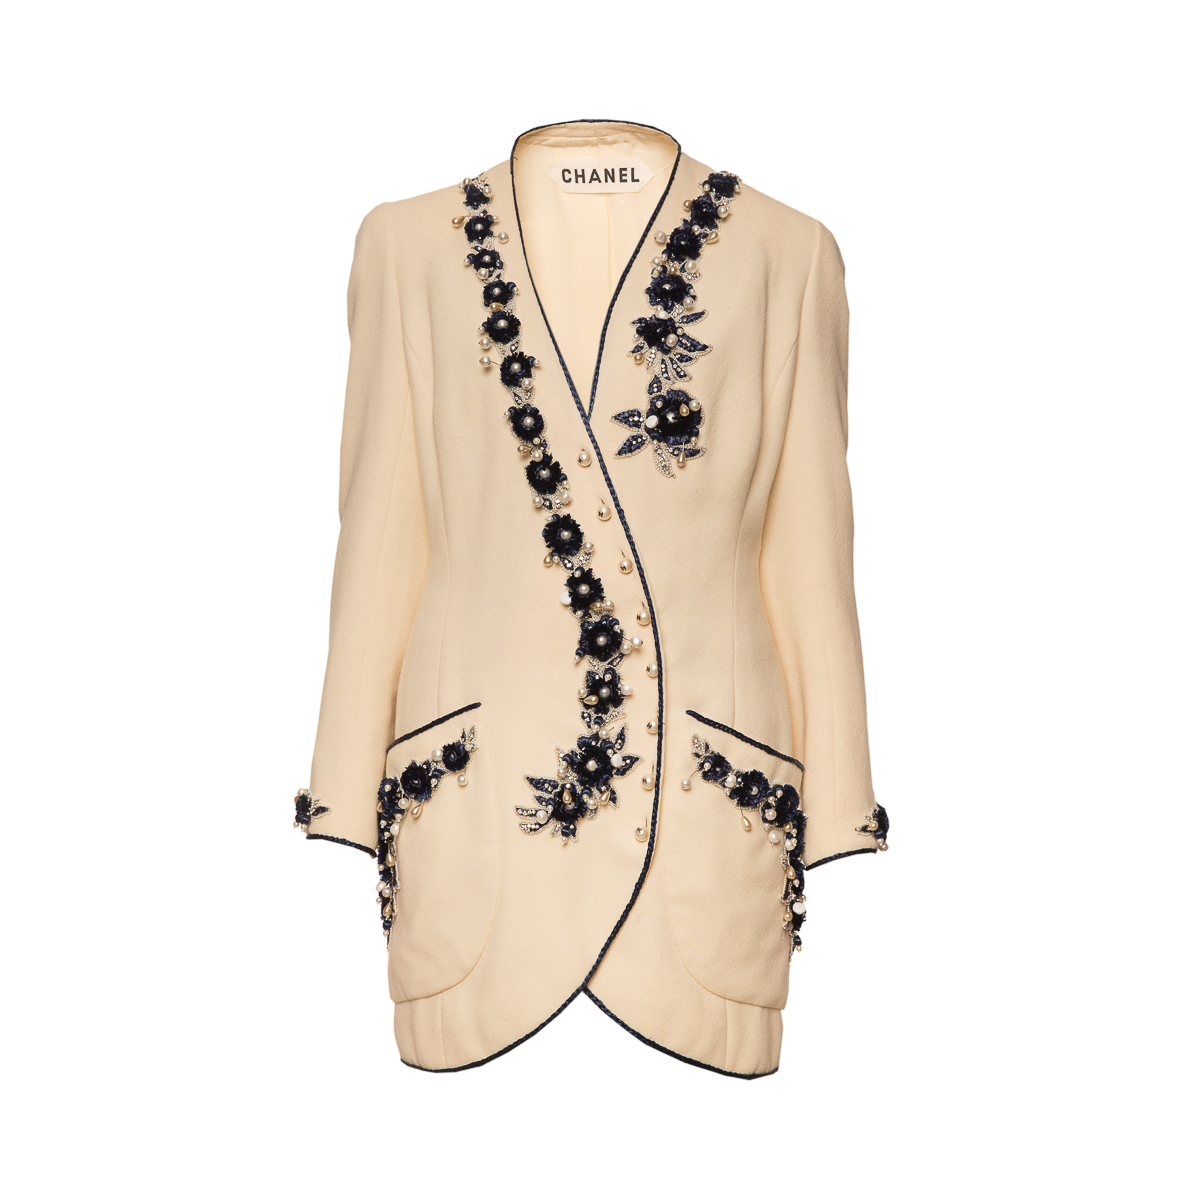 Chanel 1960s Haute Couture jacket with embroidery , size 42